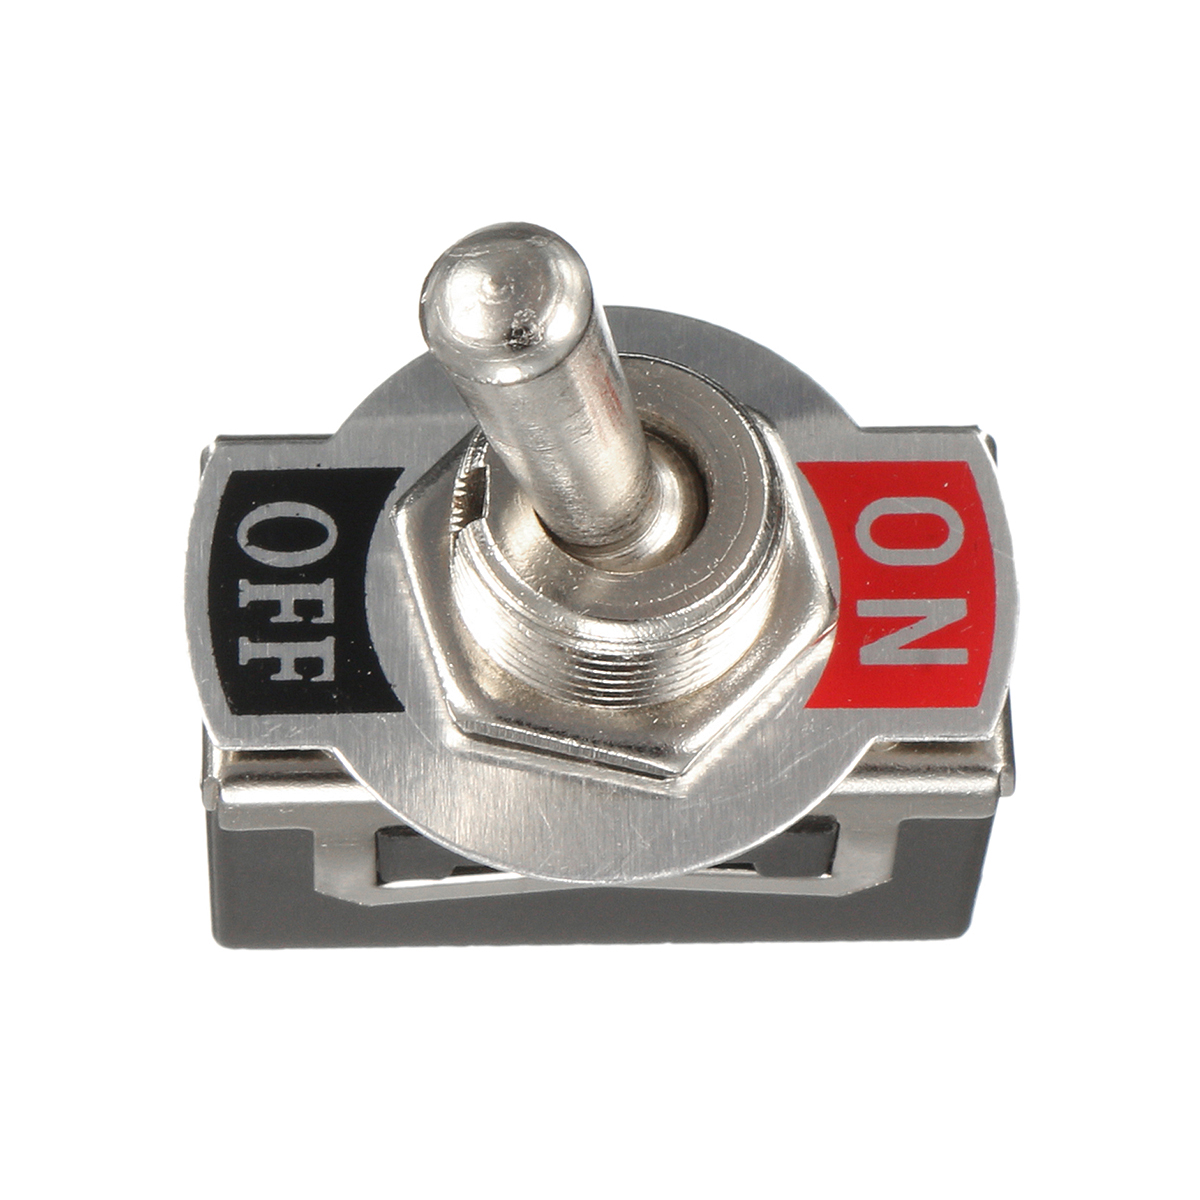 Excellway® 12V Heavy Duty Toggle Switch Flick ON/OFF Boat Light Switch Spst With Waterproof Cover